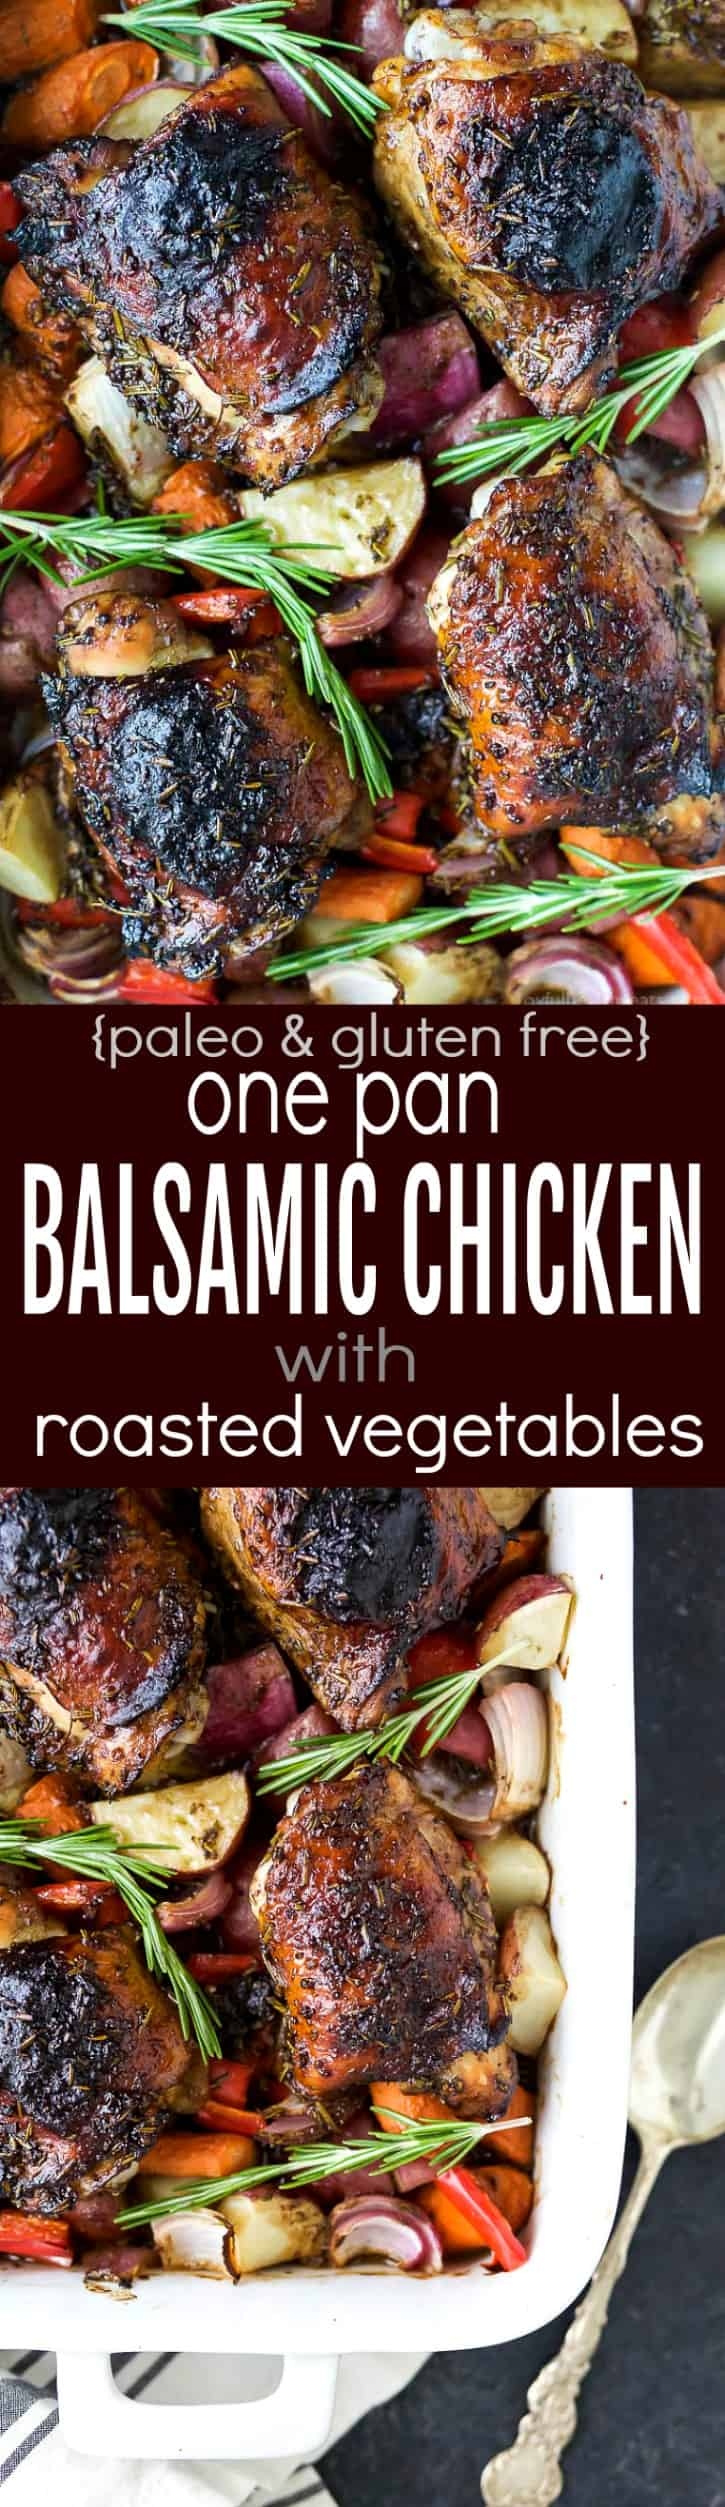 Easy One Pan Balsamic Chicken with Roasted Vegetables -a healthy paleo & gluten free recipe your family will devour! Tender juicy chicken covered in a sweet balsamic glaze has this one pan chicken bursting with flavor!